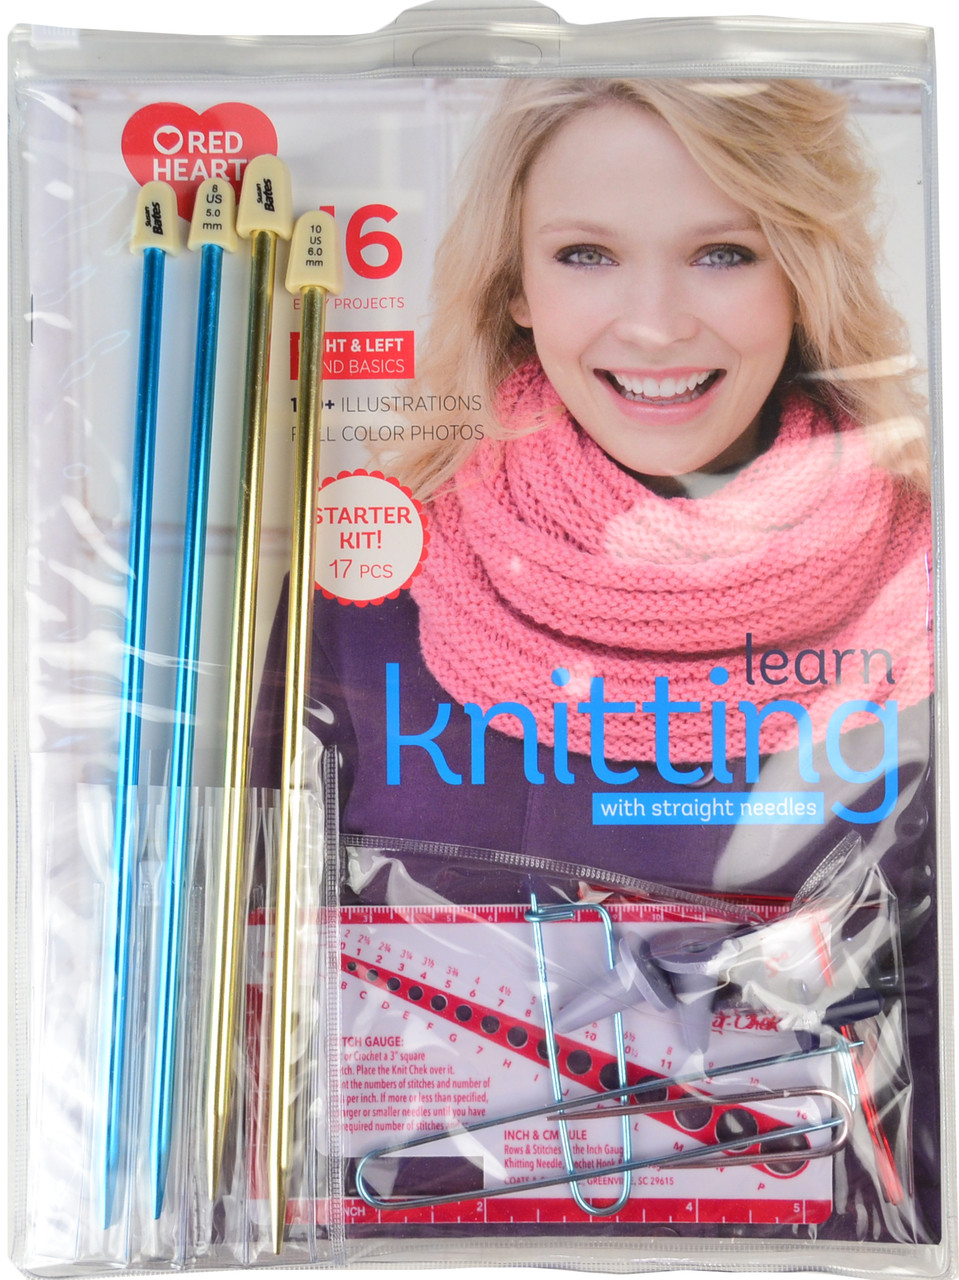 Red Heart Learn Knitting Kit Free Shipping At Yarn Canada